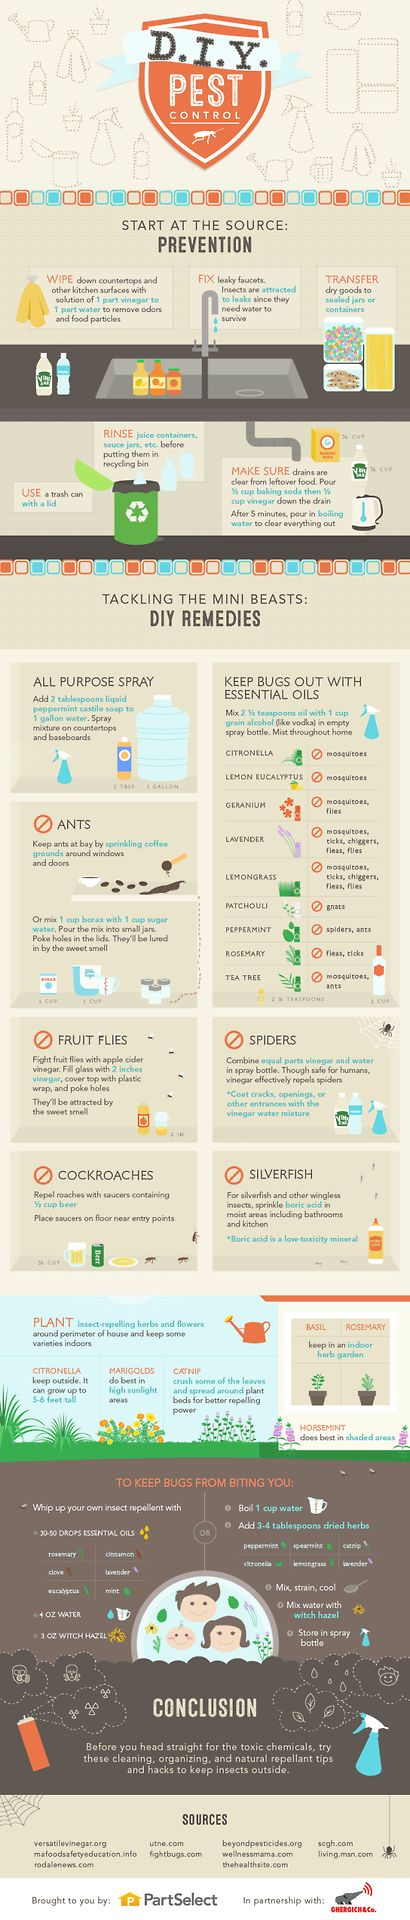 177 best pest control images on pinterest cleaning helpful keep your home bug free with these diy pest control methods partselect via lifehacker solutioingenieria Choice Image